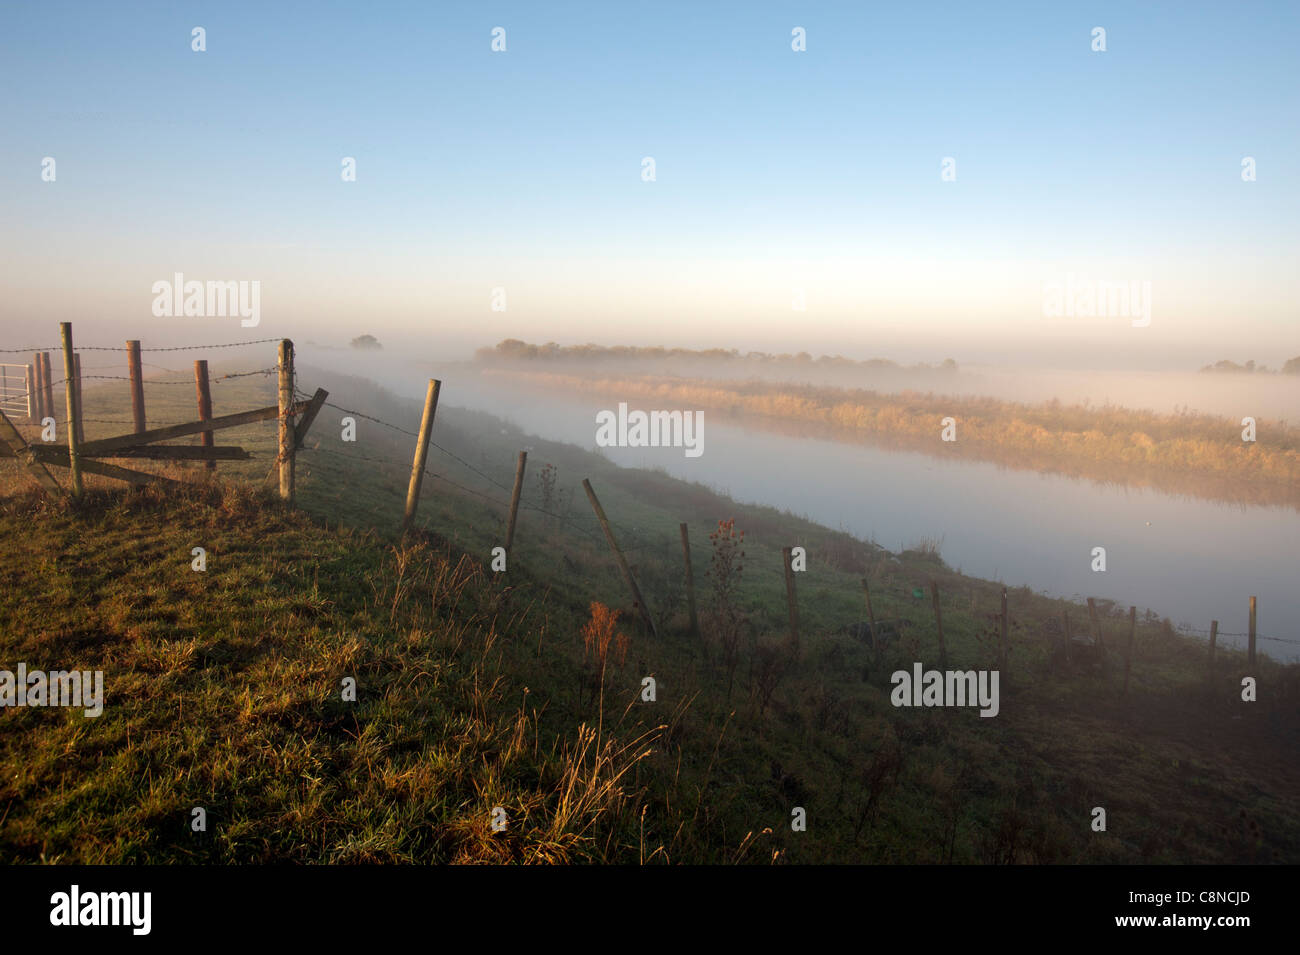 The old Bedford Level or River in the Fens near Cambridge, Cambridgeshire on a misty moning - Stock Image